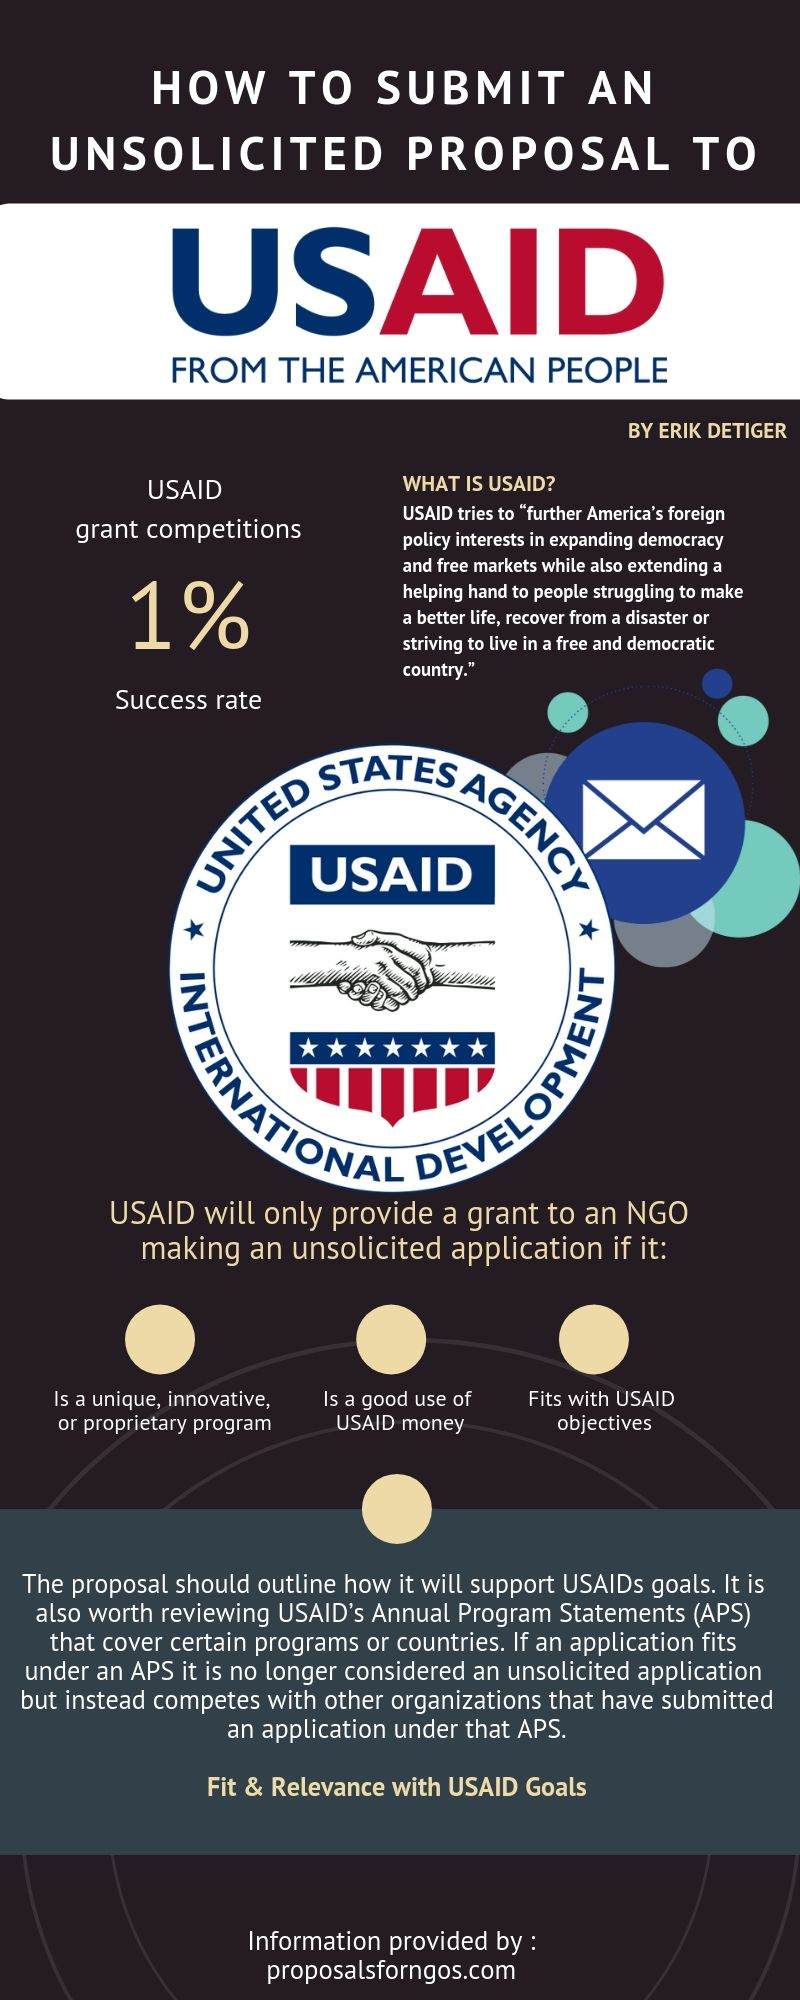 How to Submit an Unsolicited Proposal to USAID | Proposal